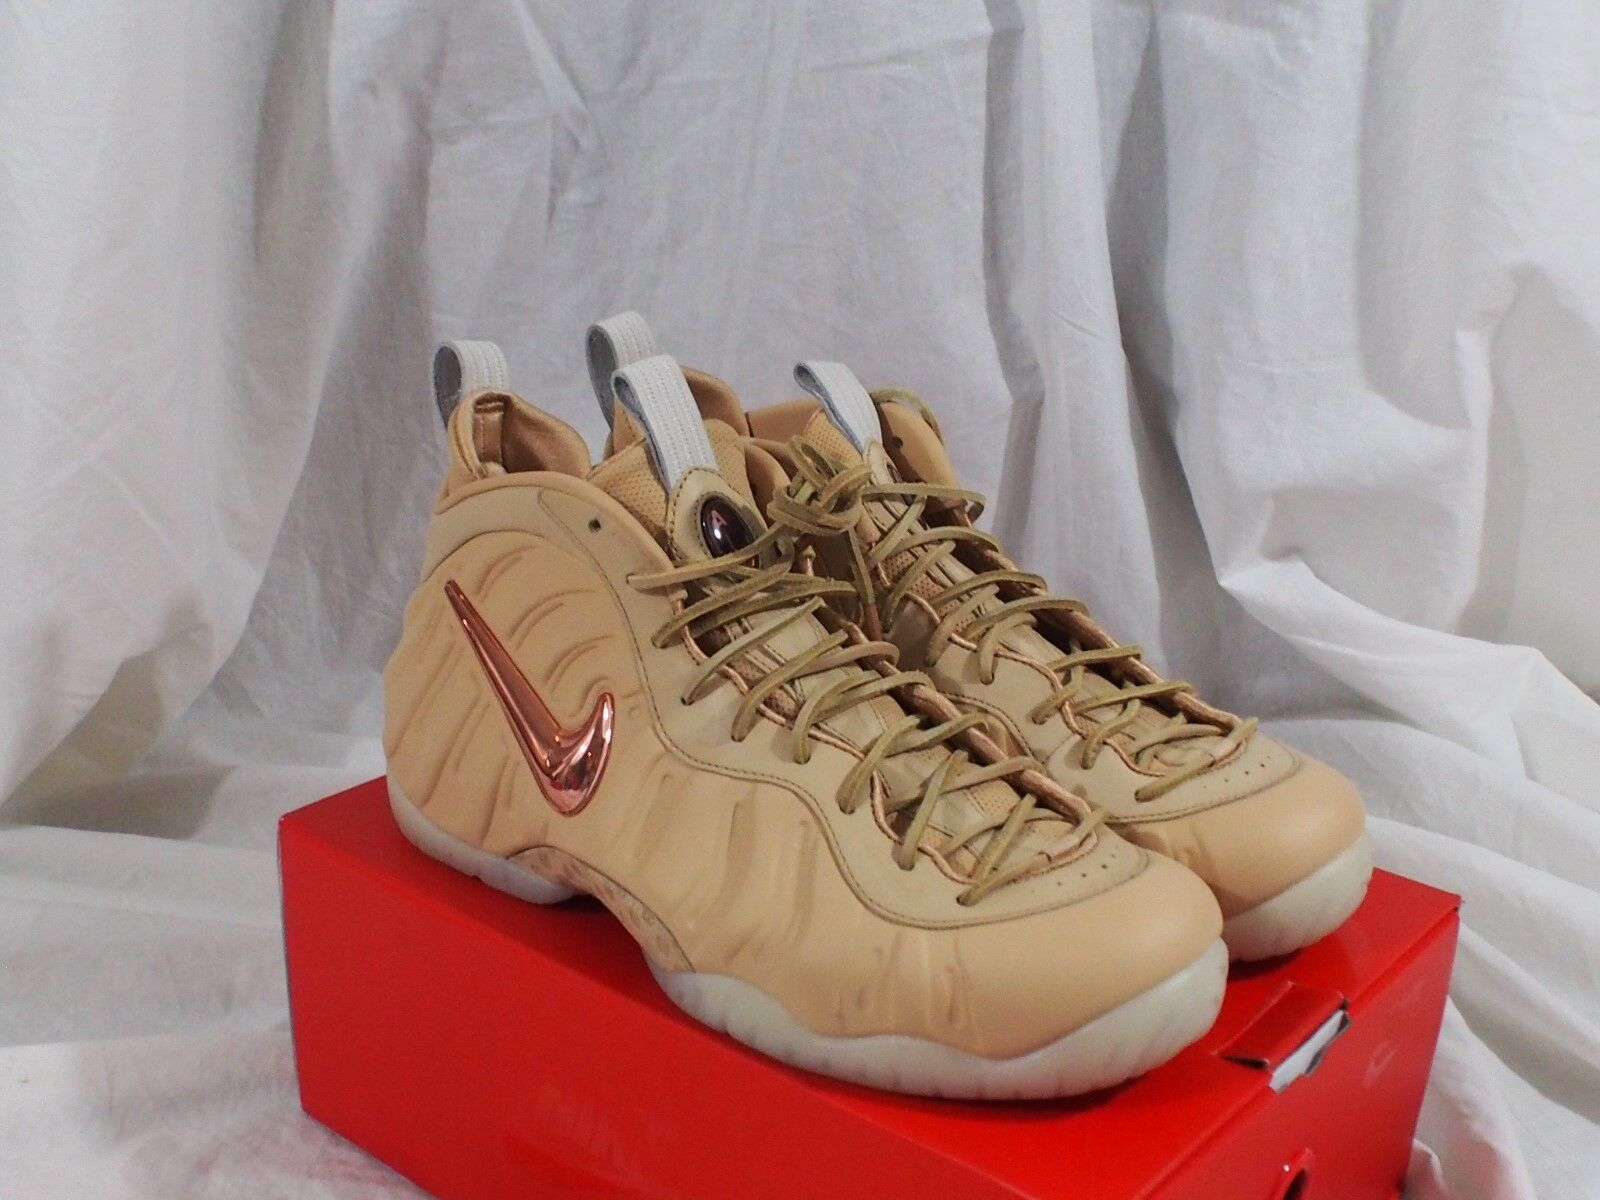 Nike Air Foamposite Pro Premium AS QS Vachetta Tan / Gold 920377-200